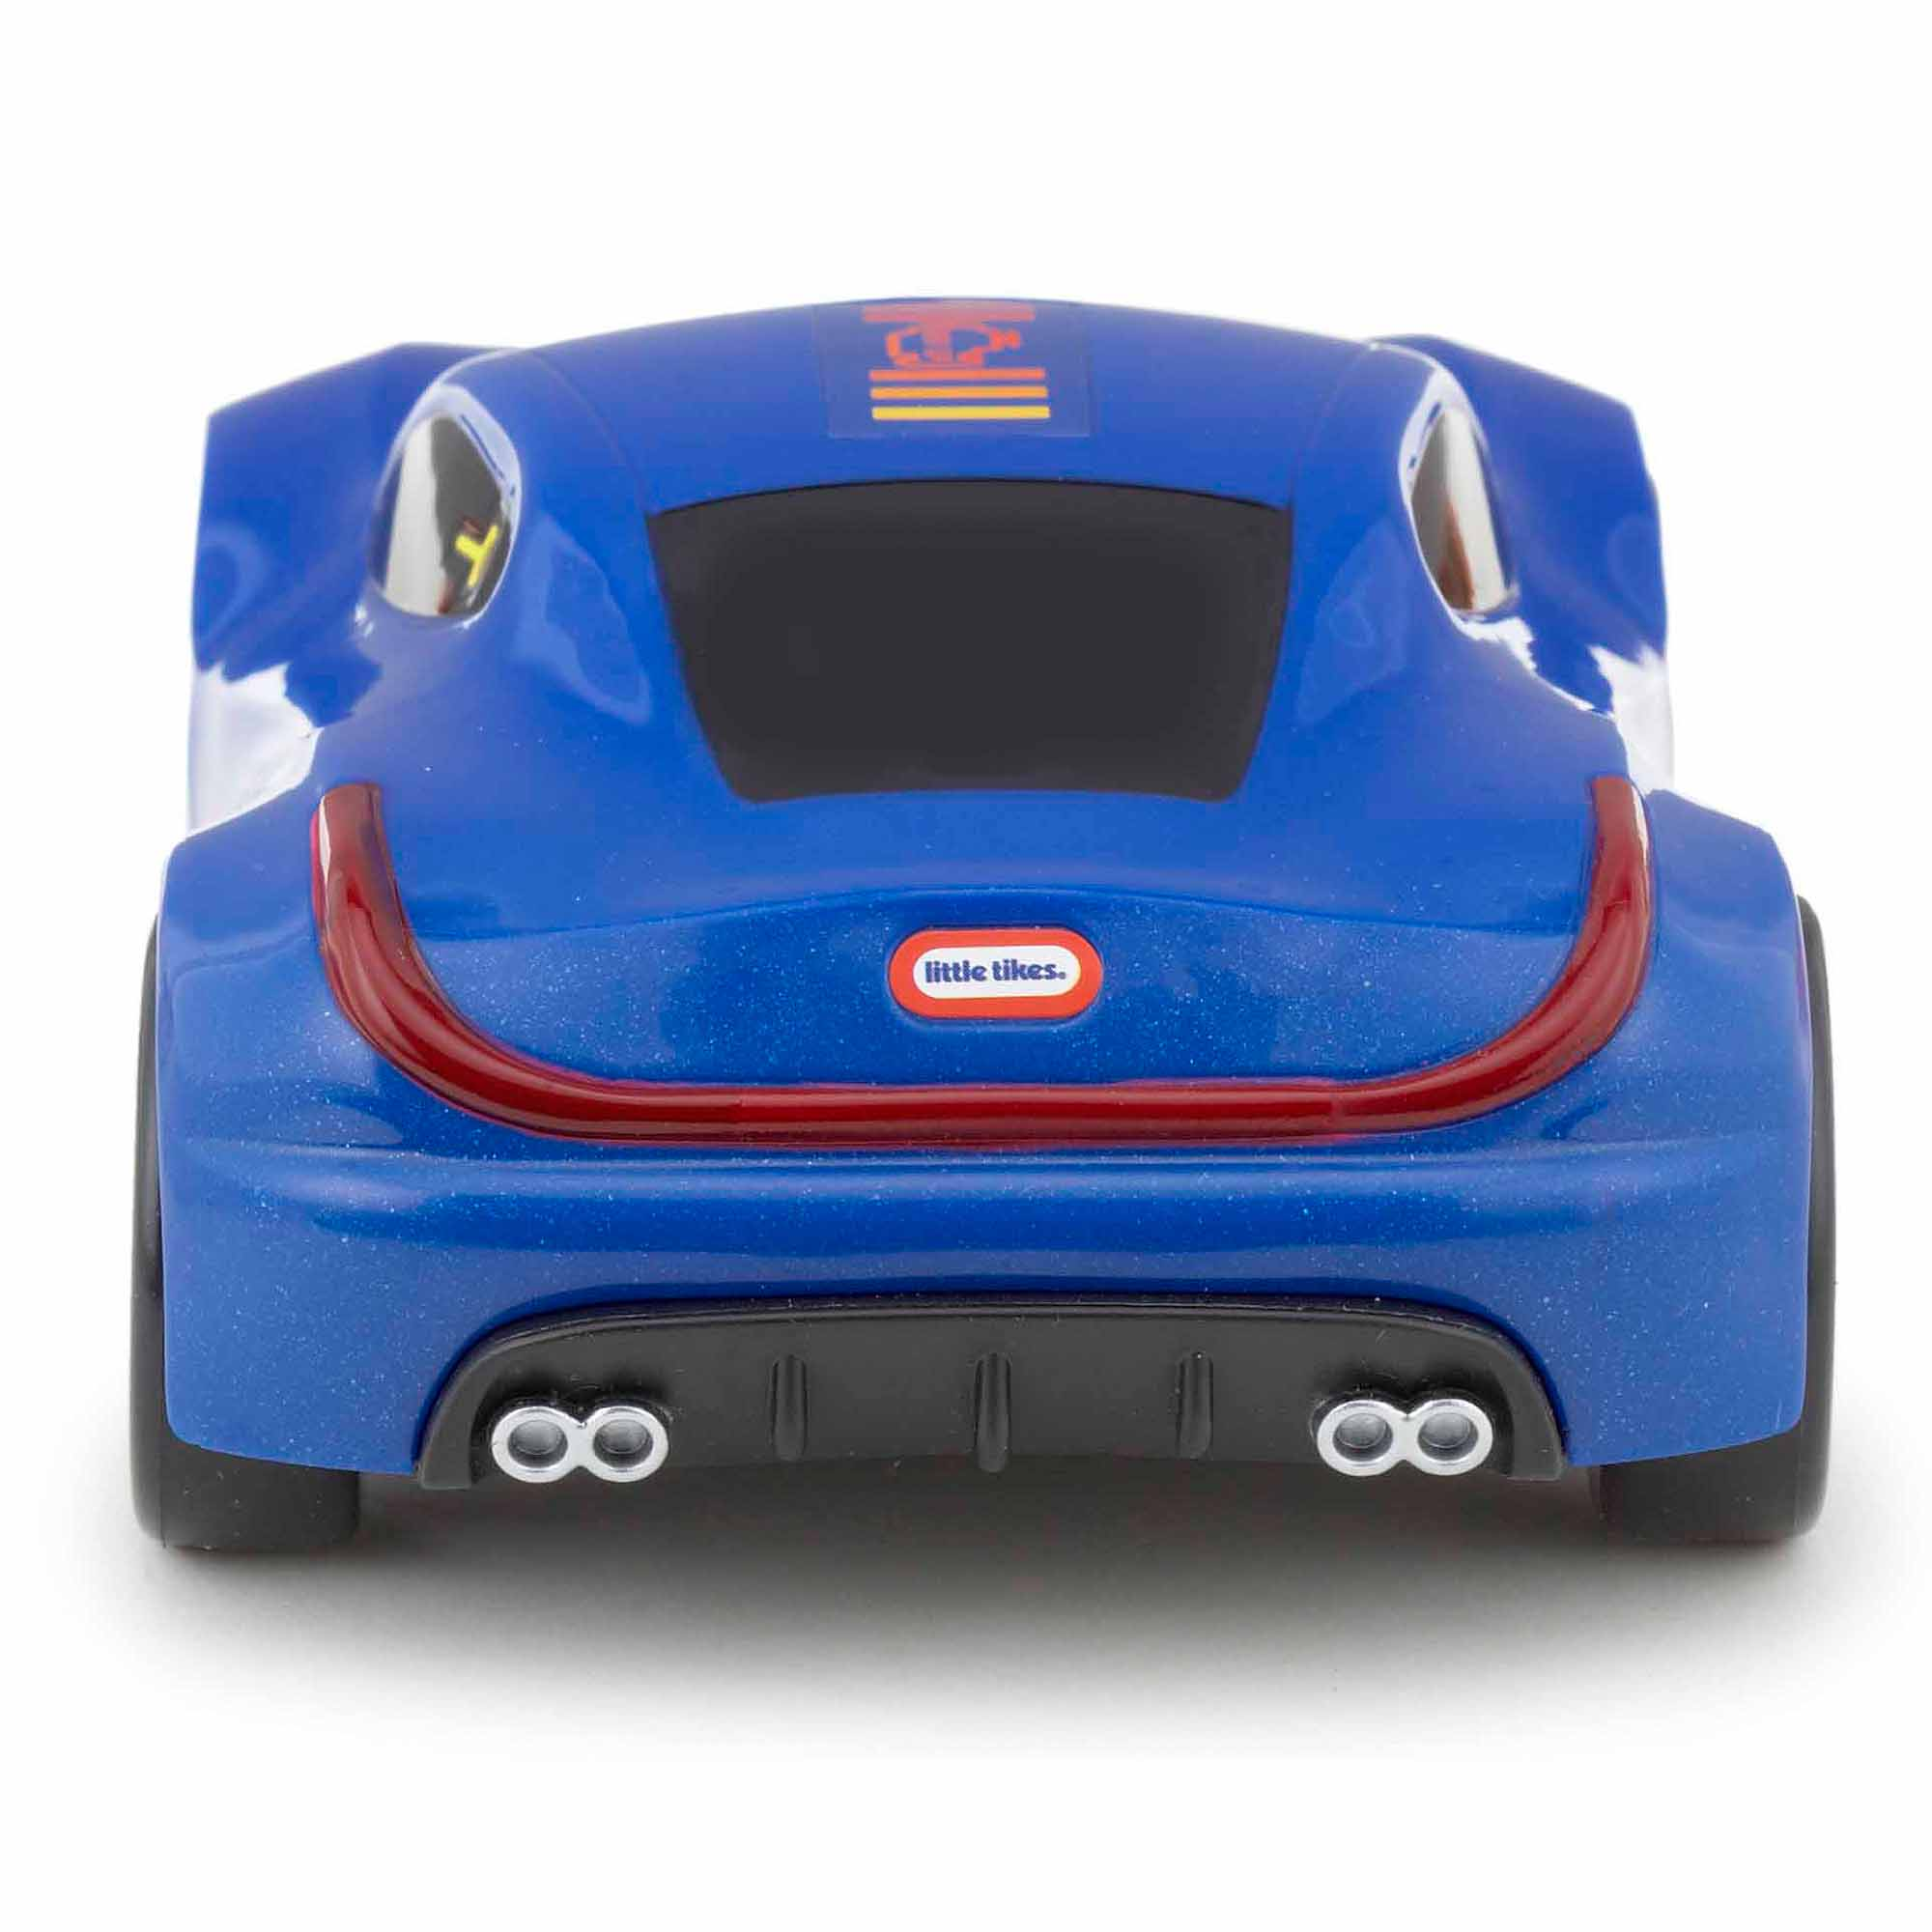 Little Tikes Touch 'N' Go Racers, Blue Sportscar